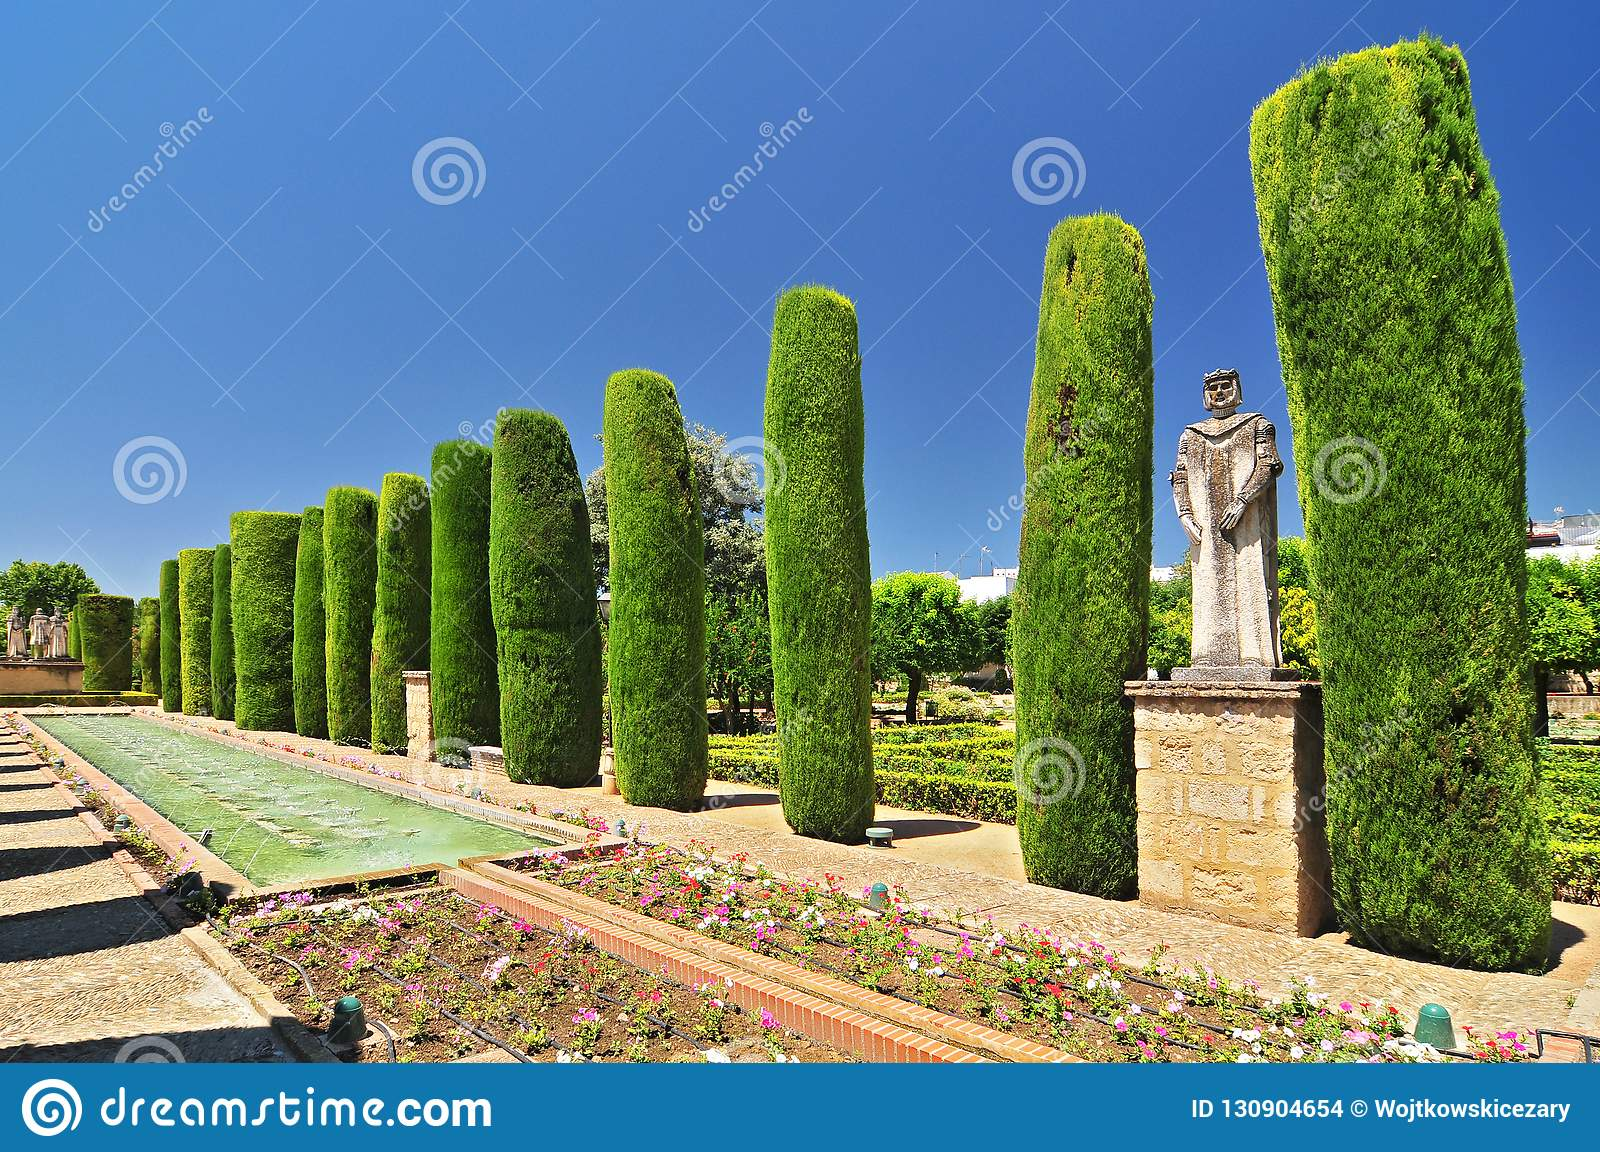 Pain Andalusia Cordoba, Alcazar of the christian kings cypress alley and basins in the gardens, Spain.